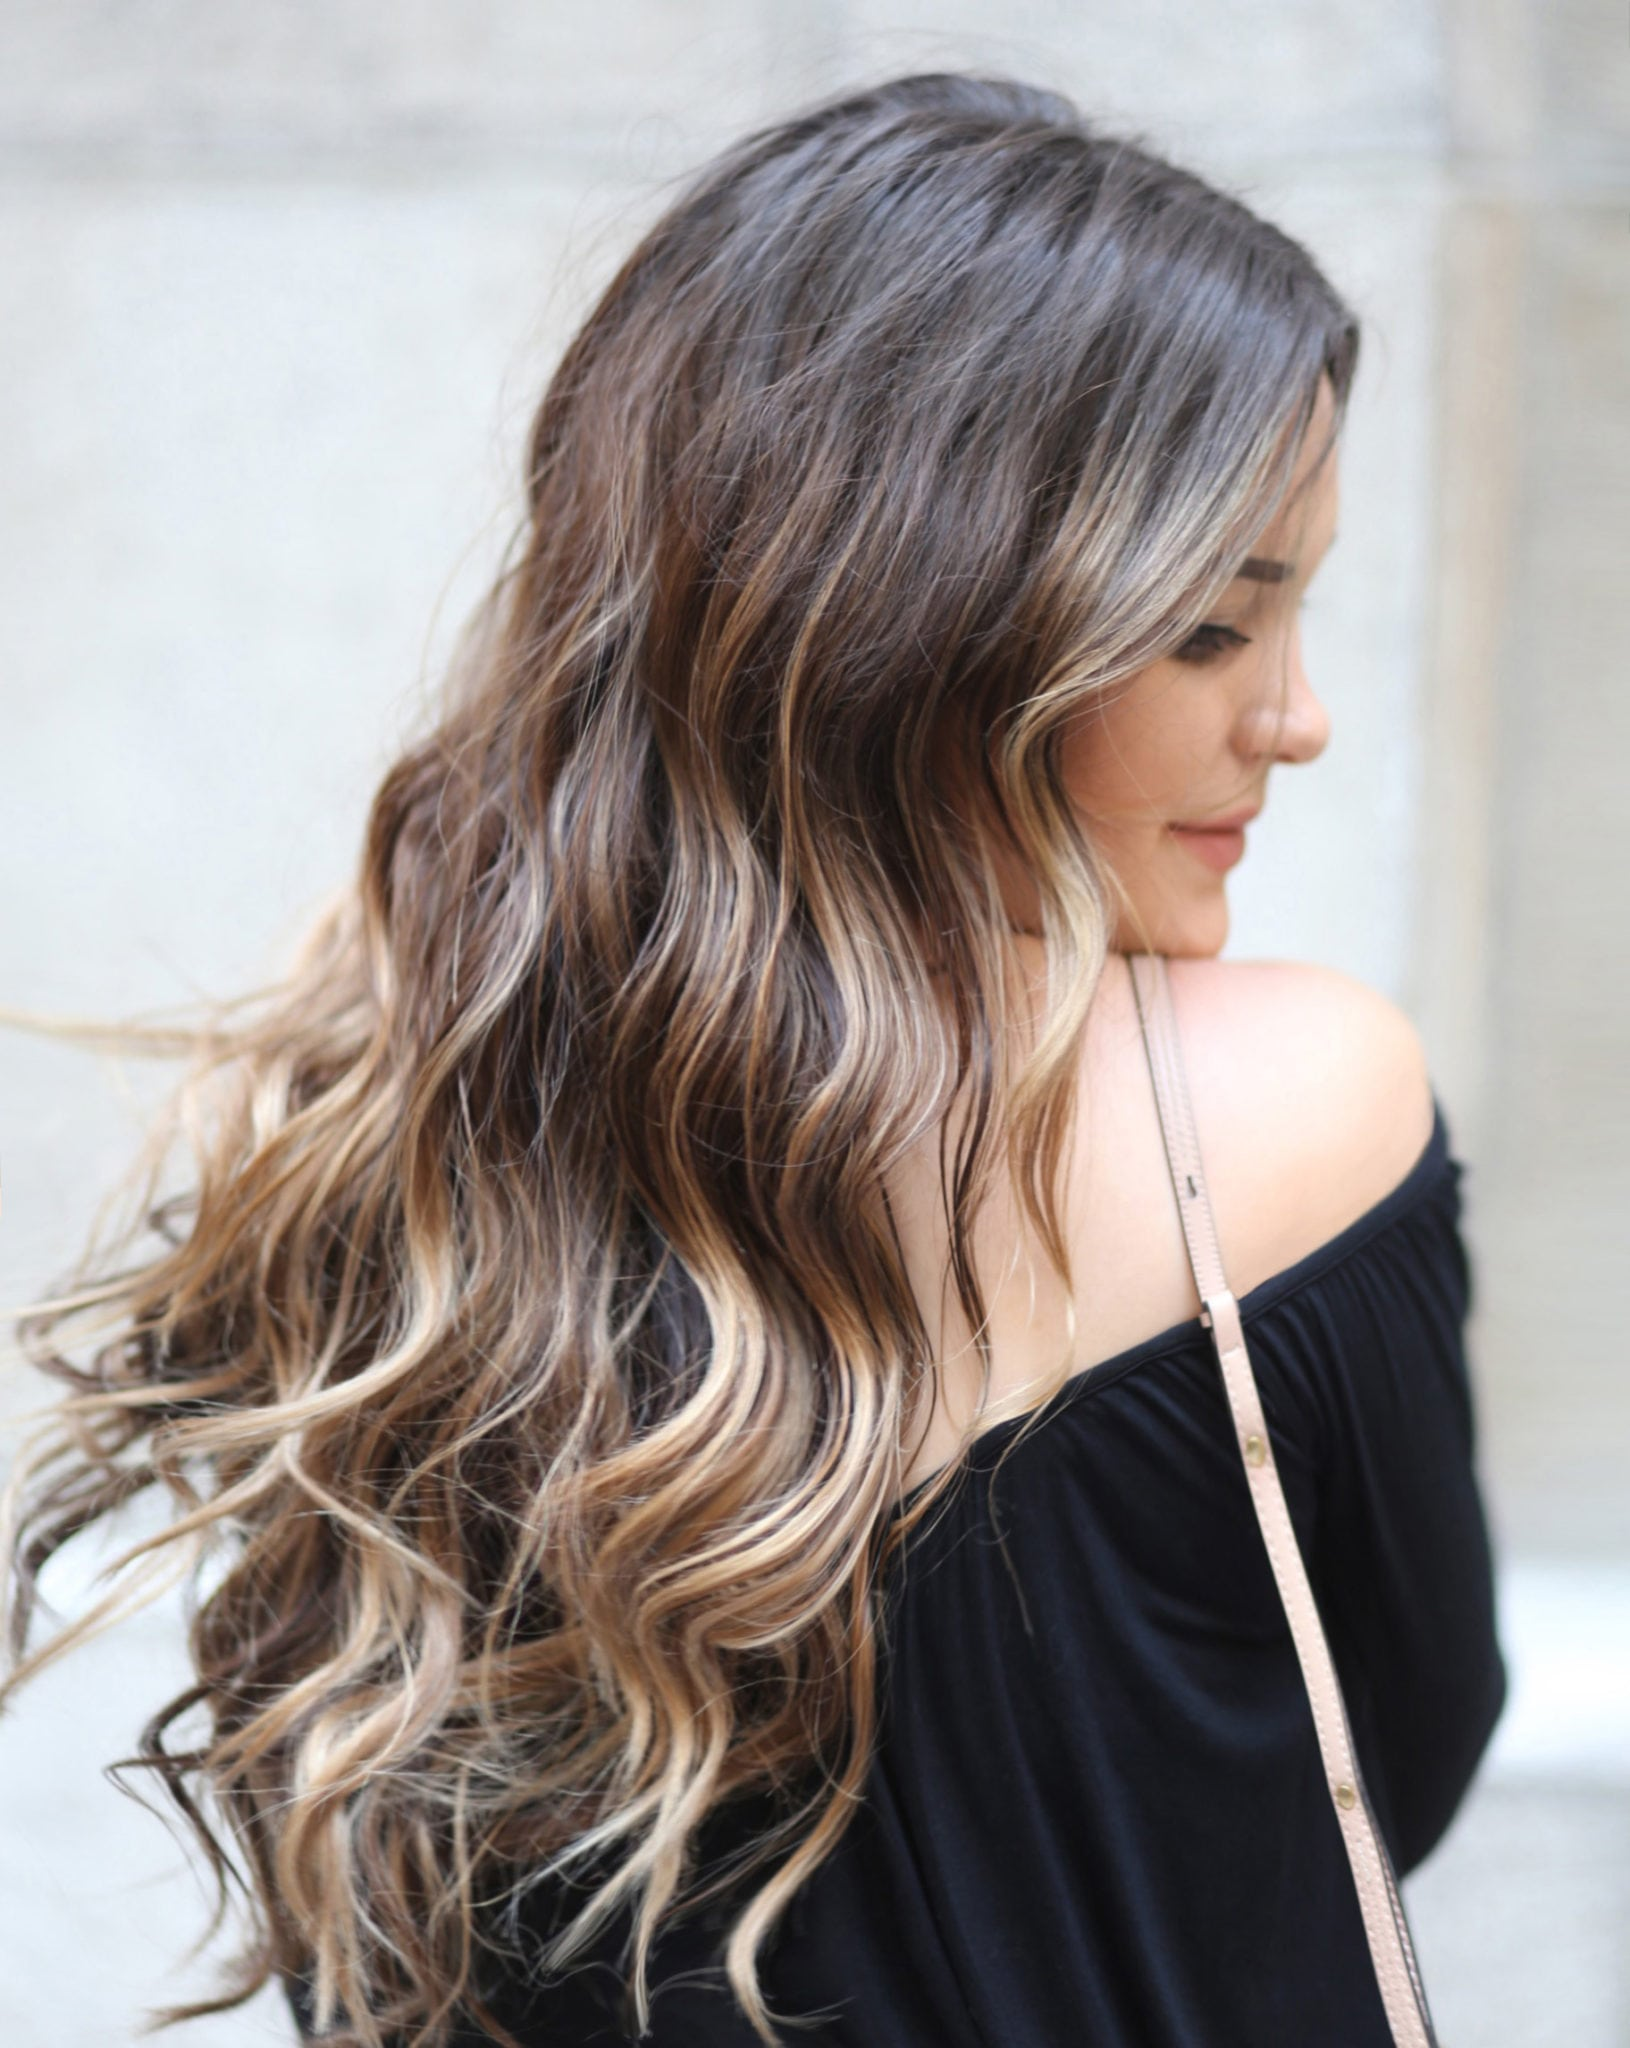 Partial Balayage featured by popular Orlando beauty blogger, Mash Elle | what is a partial balayage | how to you take care of balayage hair | caramel balayage hair | long hairstyles for women | hair inspiration | the best curling wand | ombre vs balayage